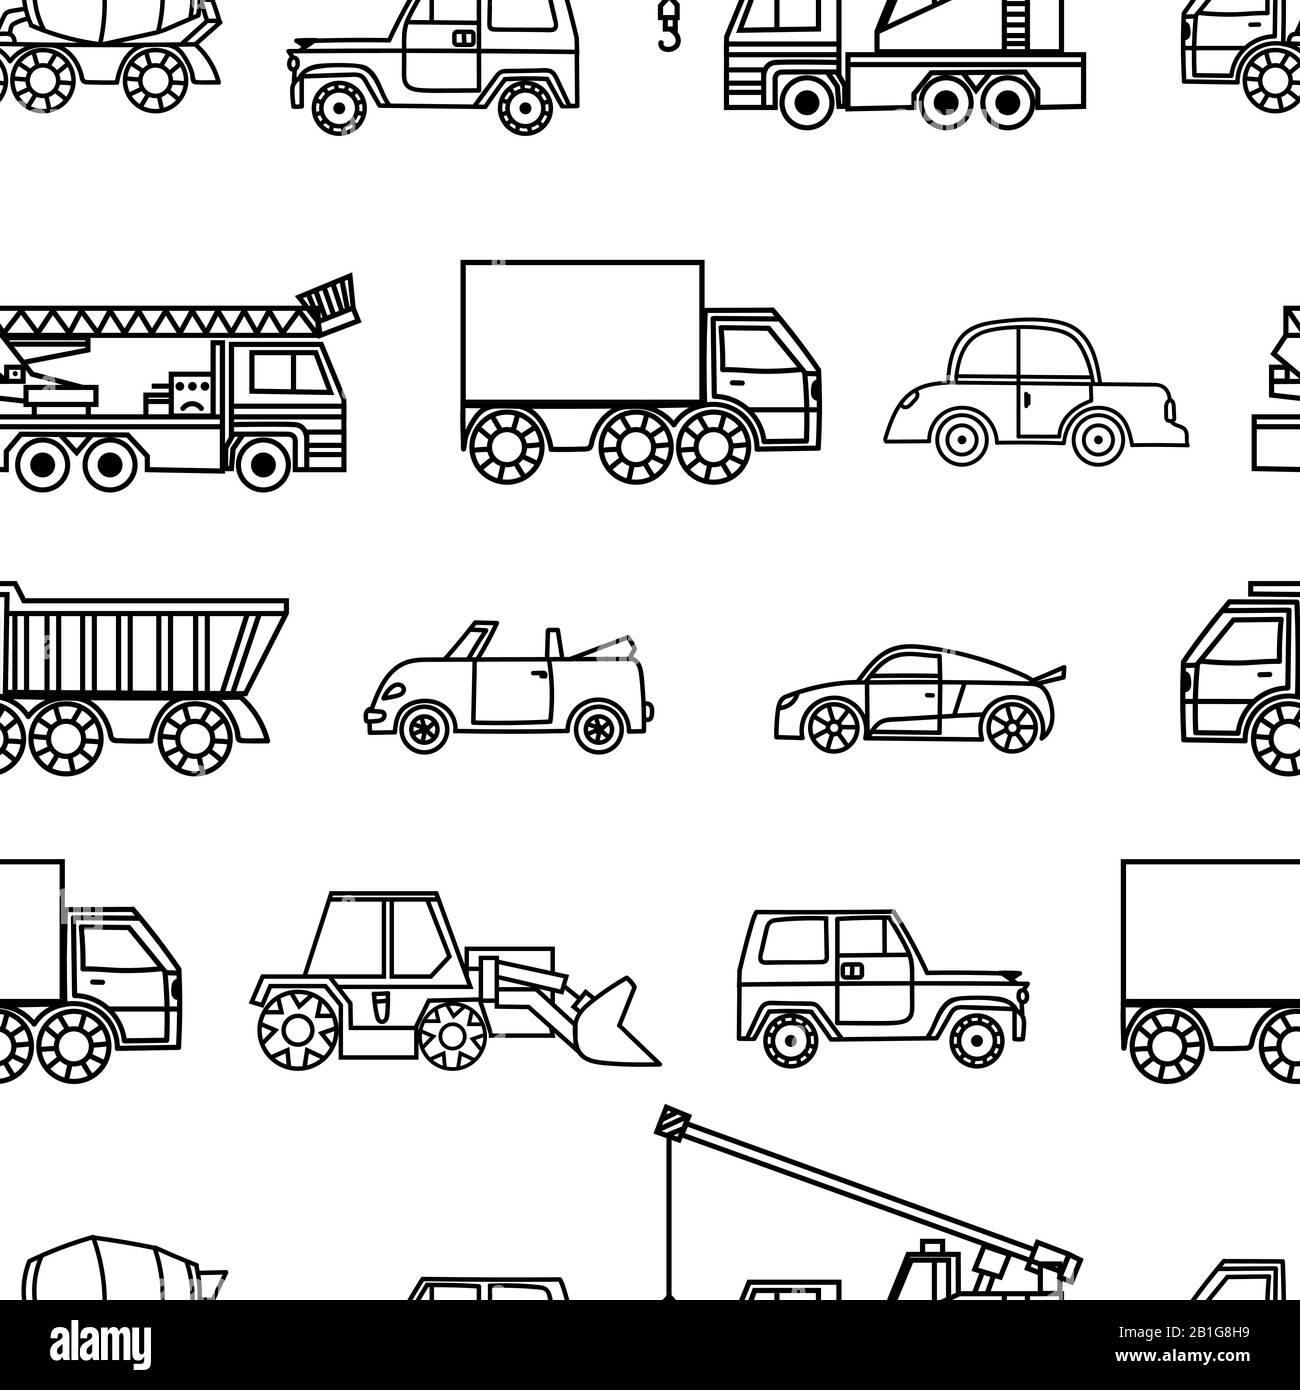 Car Seamless Pattern Black And White Cartoon Background Coloring Book Monochrome Drawing Black And White Cars On A White Background For The Desig Stock Vector Image Art Alamy